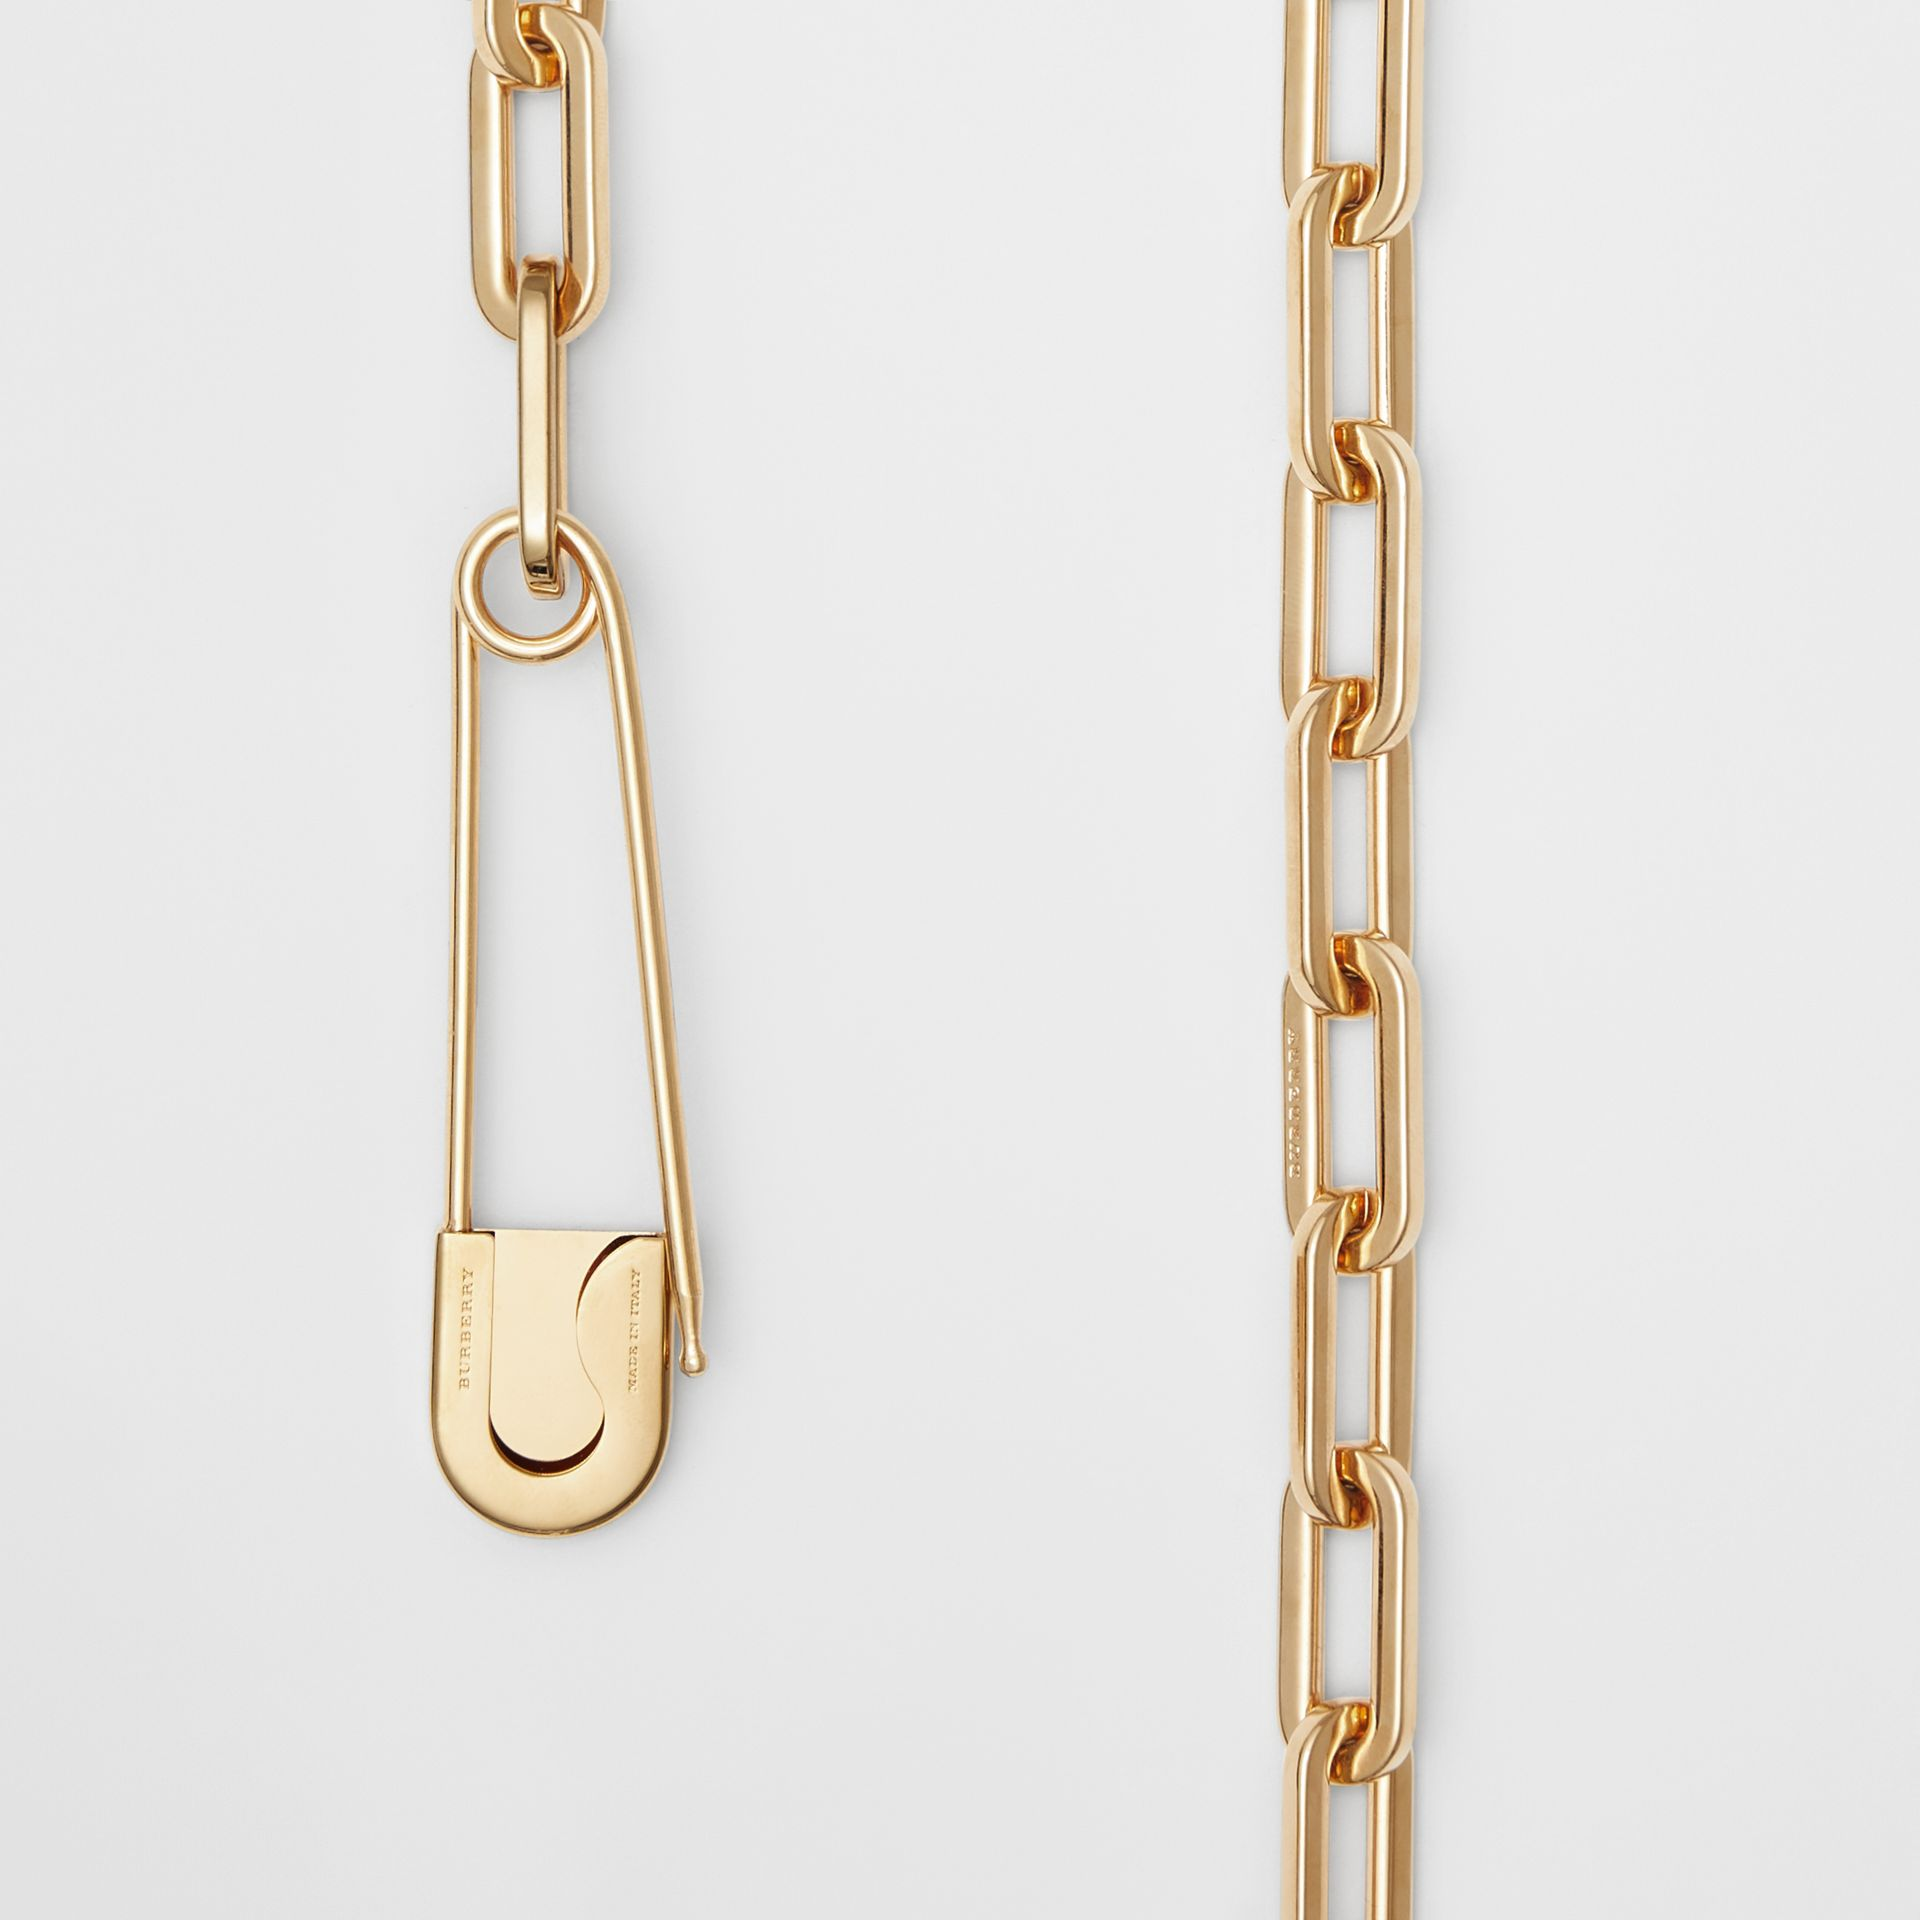 Long collier à maillons plaqués or avec épingle à kilt (Clair) - Femme | Burberry - photo de la galerie 1